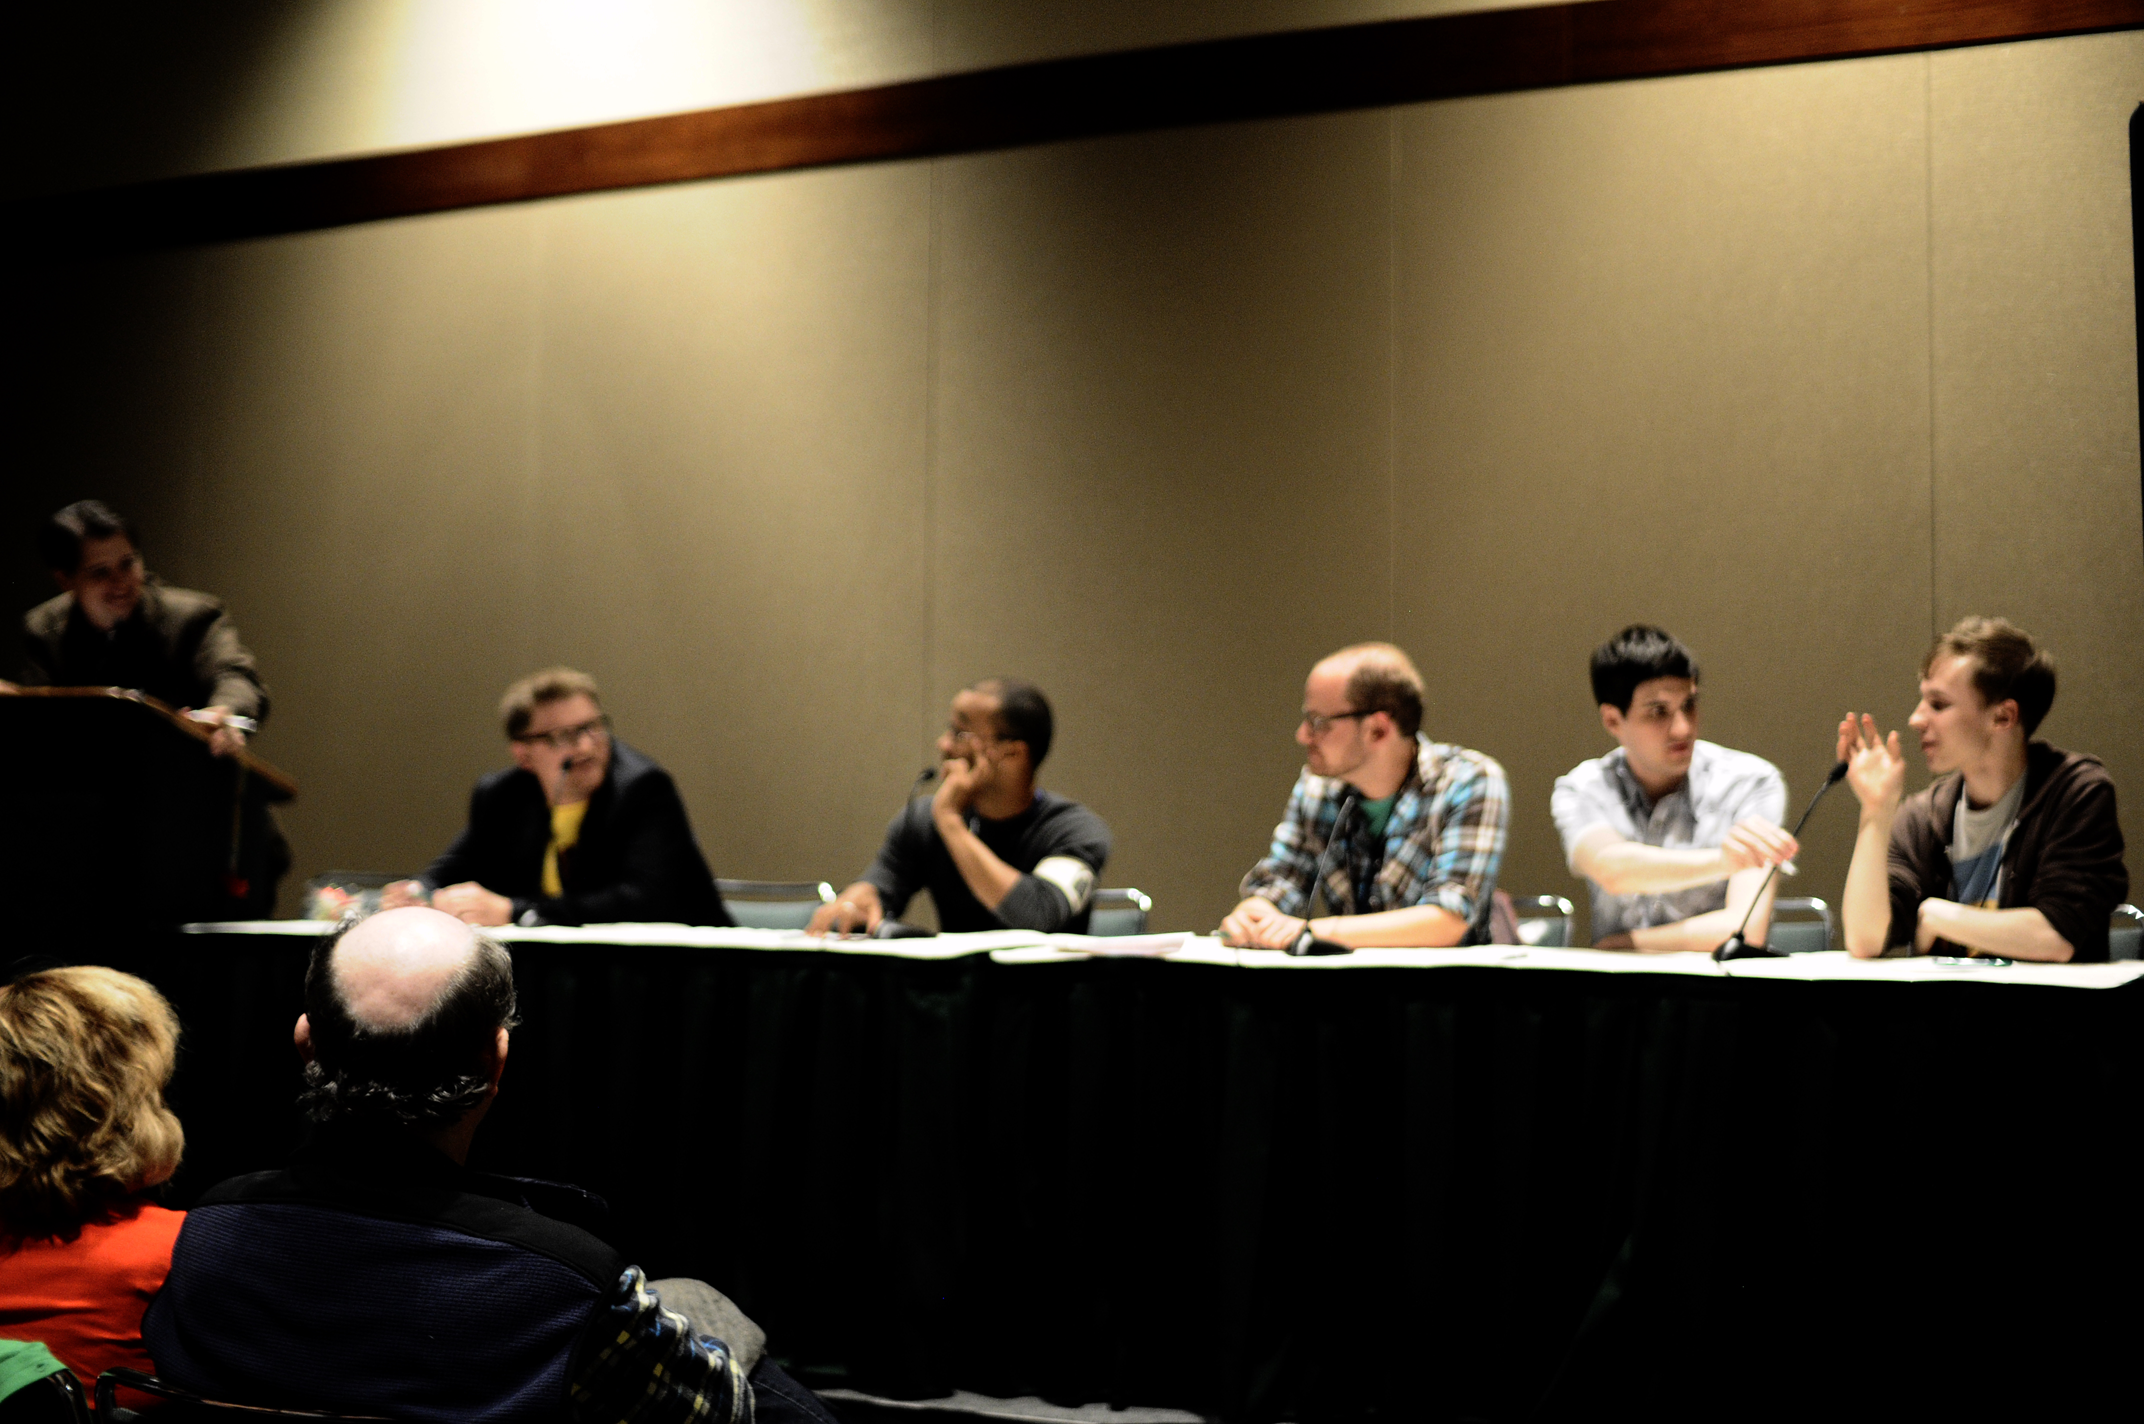 facepalm_games_pax10_presentation_the_rightmost_guy_is_olli.png